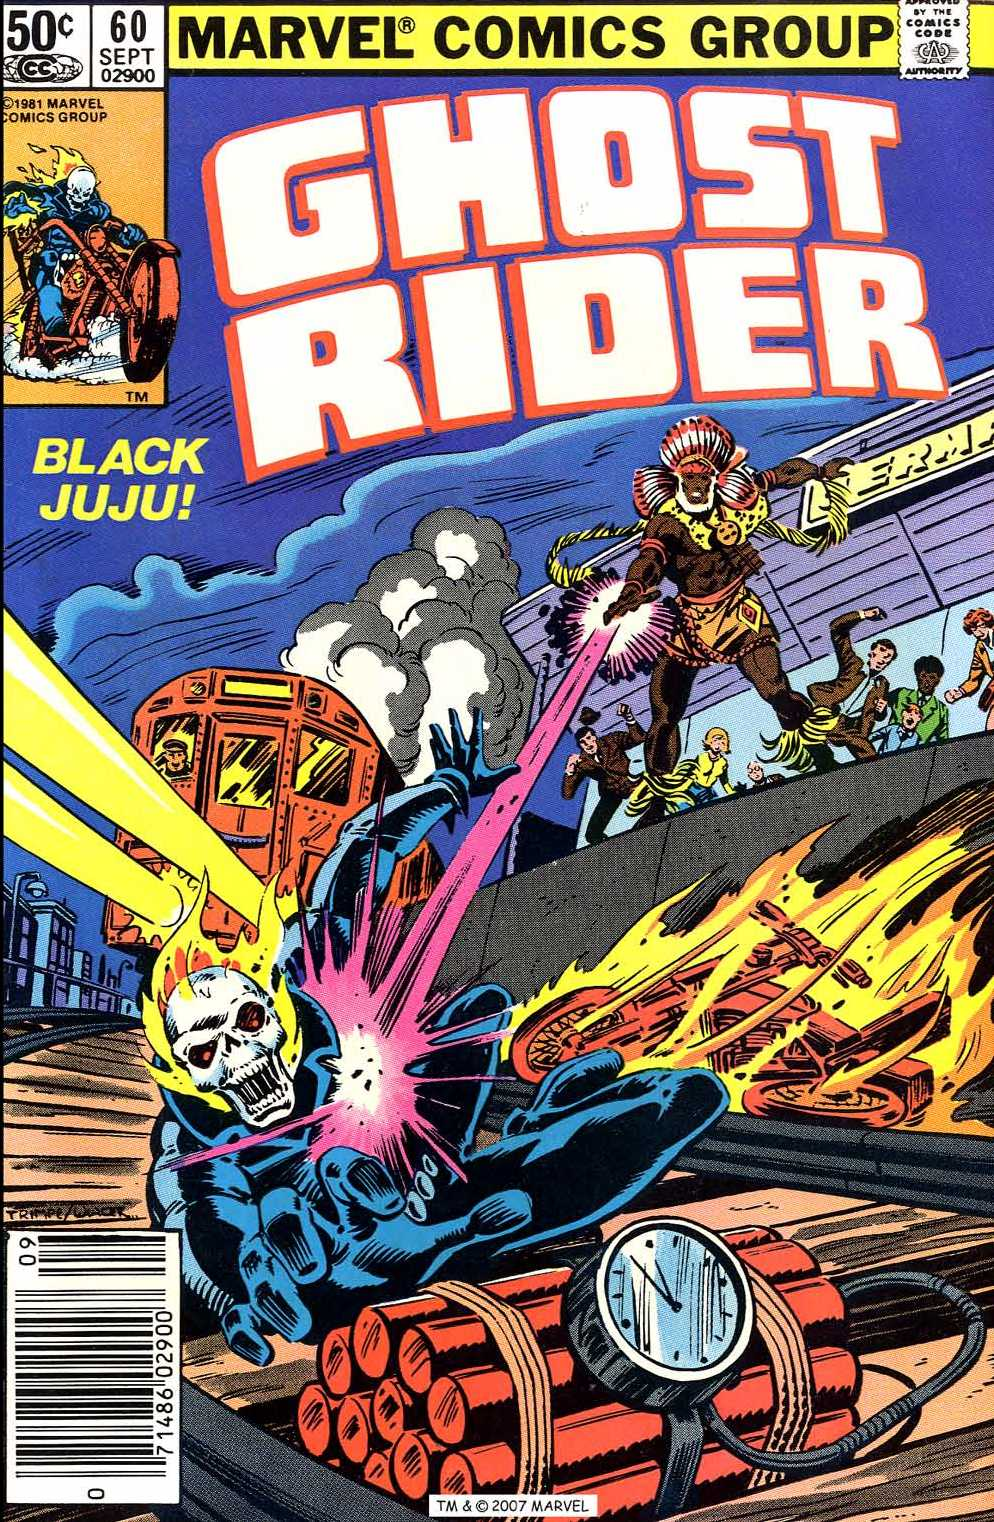 Ghost Rider (1973) issue 60 - Page 1